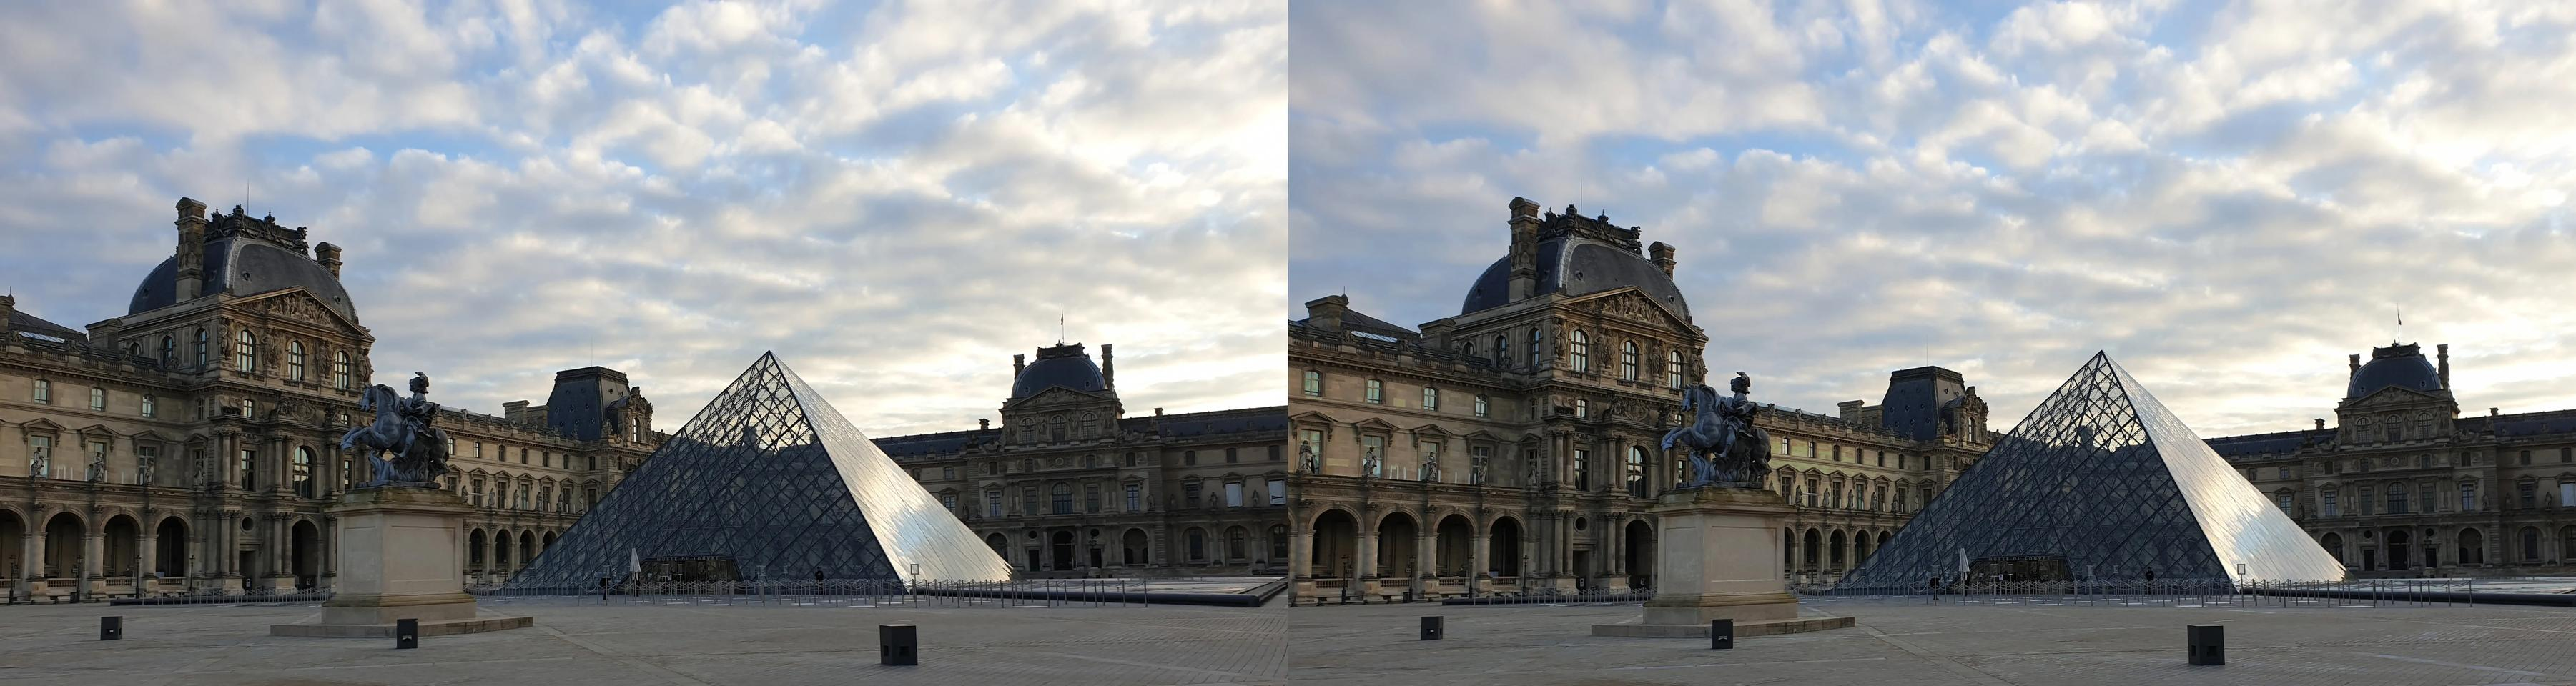 Le Louvre, Paris, in times of covid